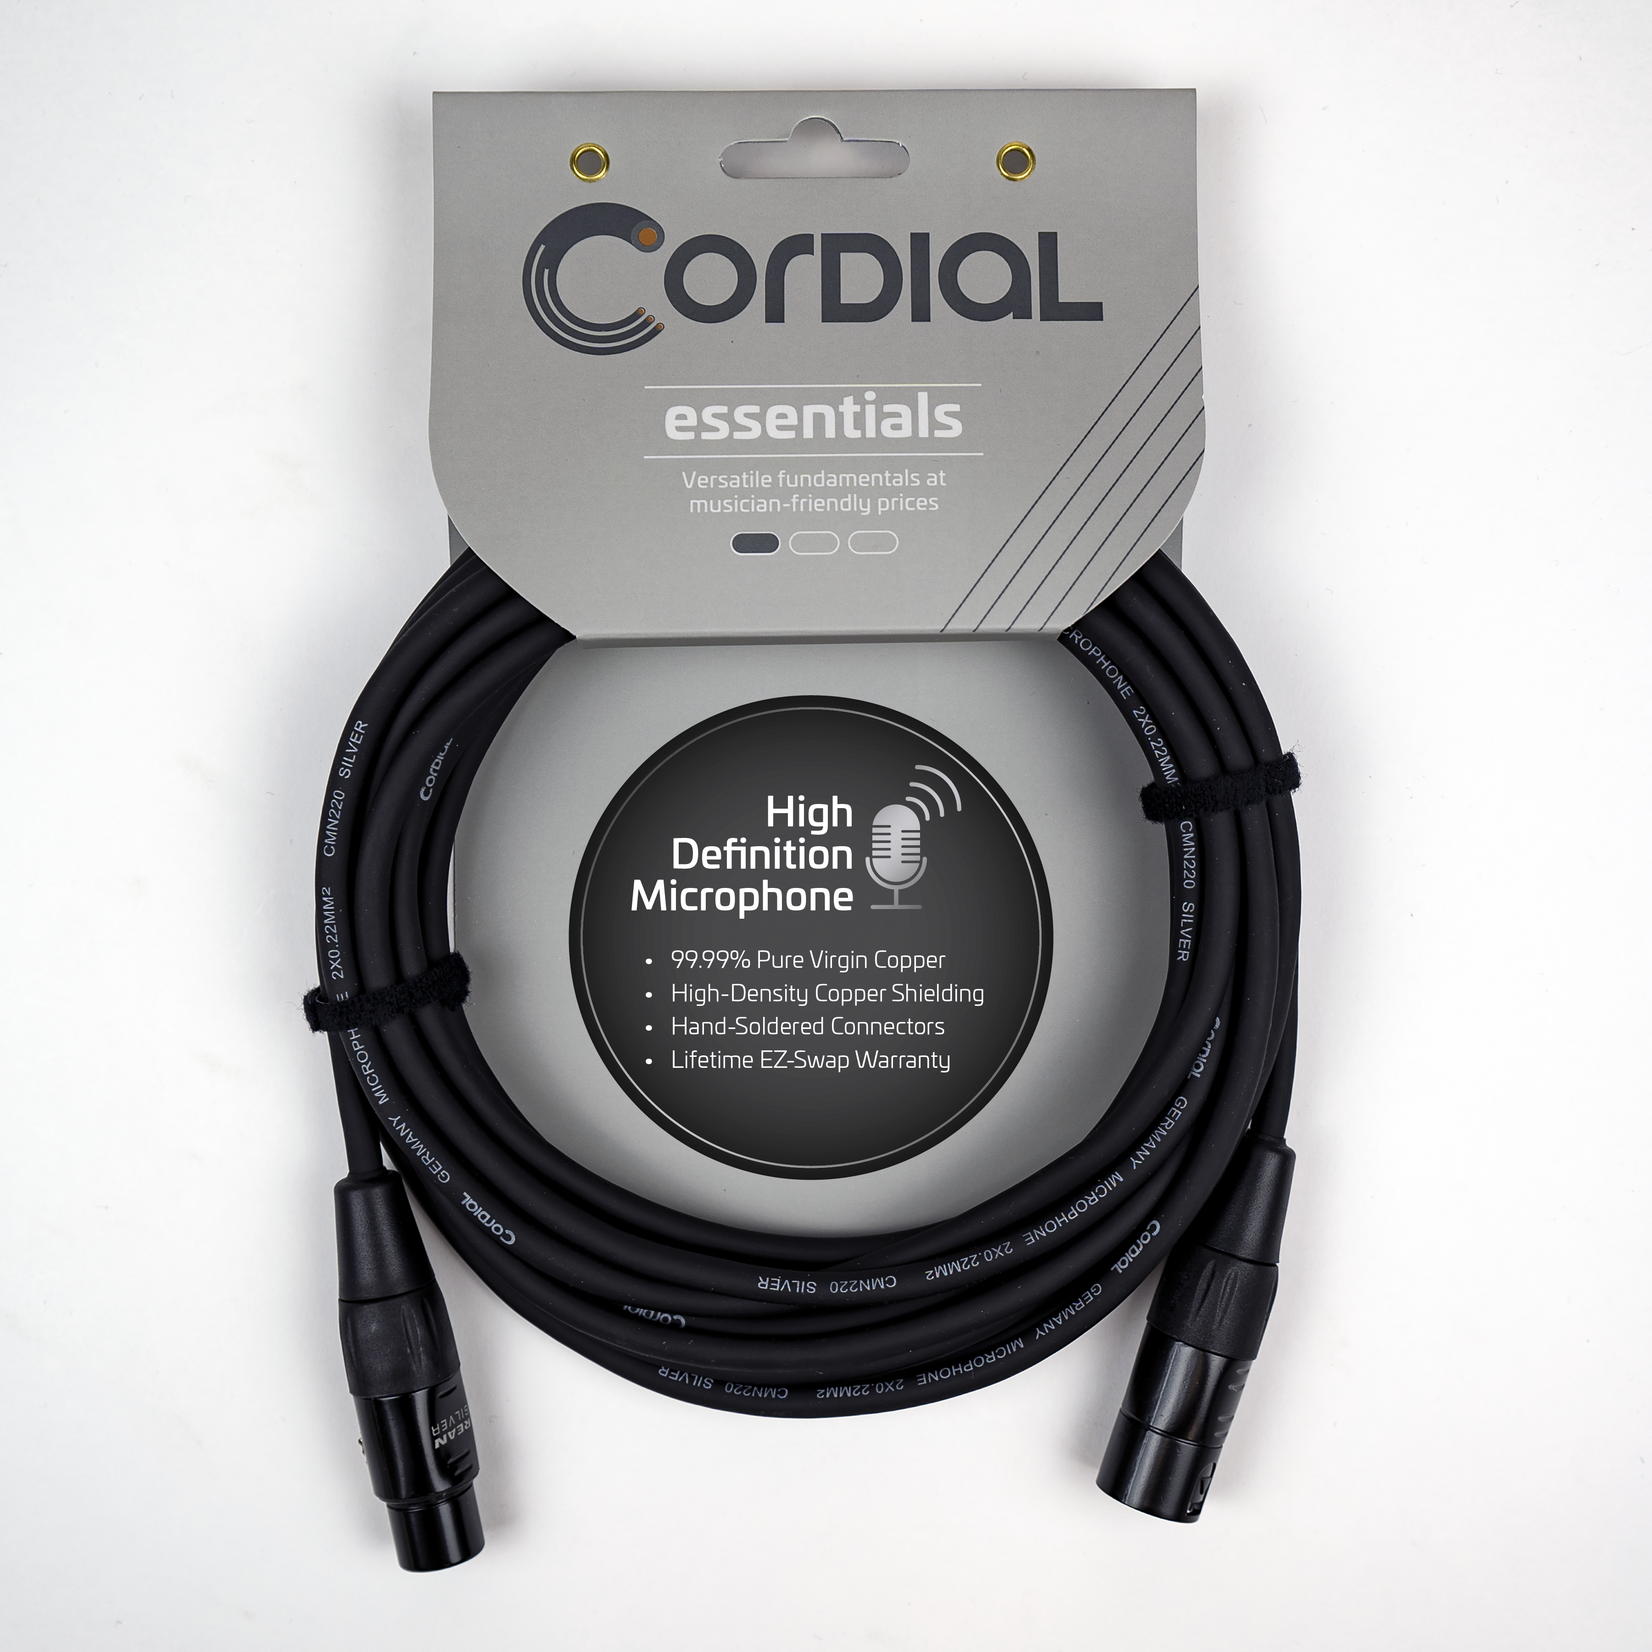 Cordial Cables Cordial Cables Microphone - XLRM to XLRF - 16.5 Feet, Essential Series